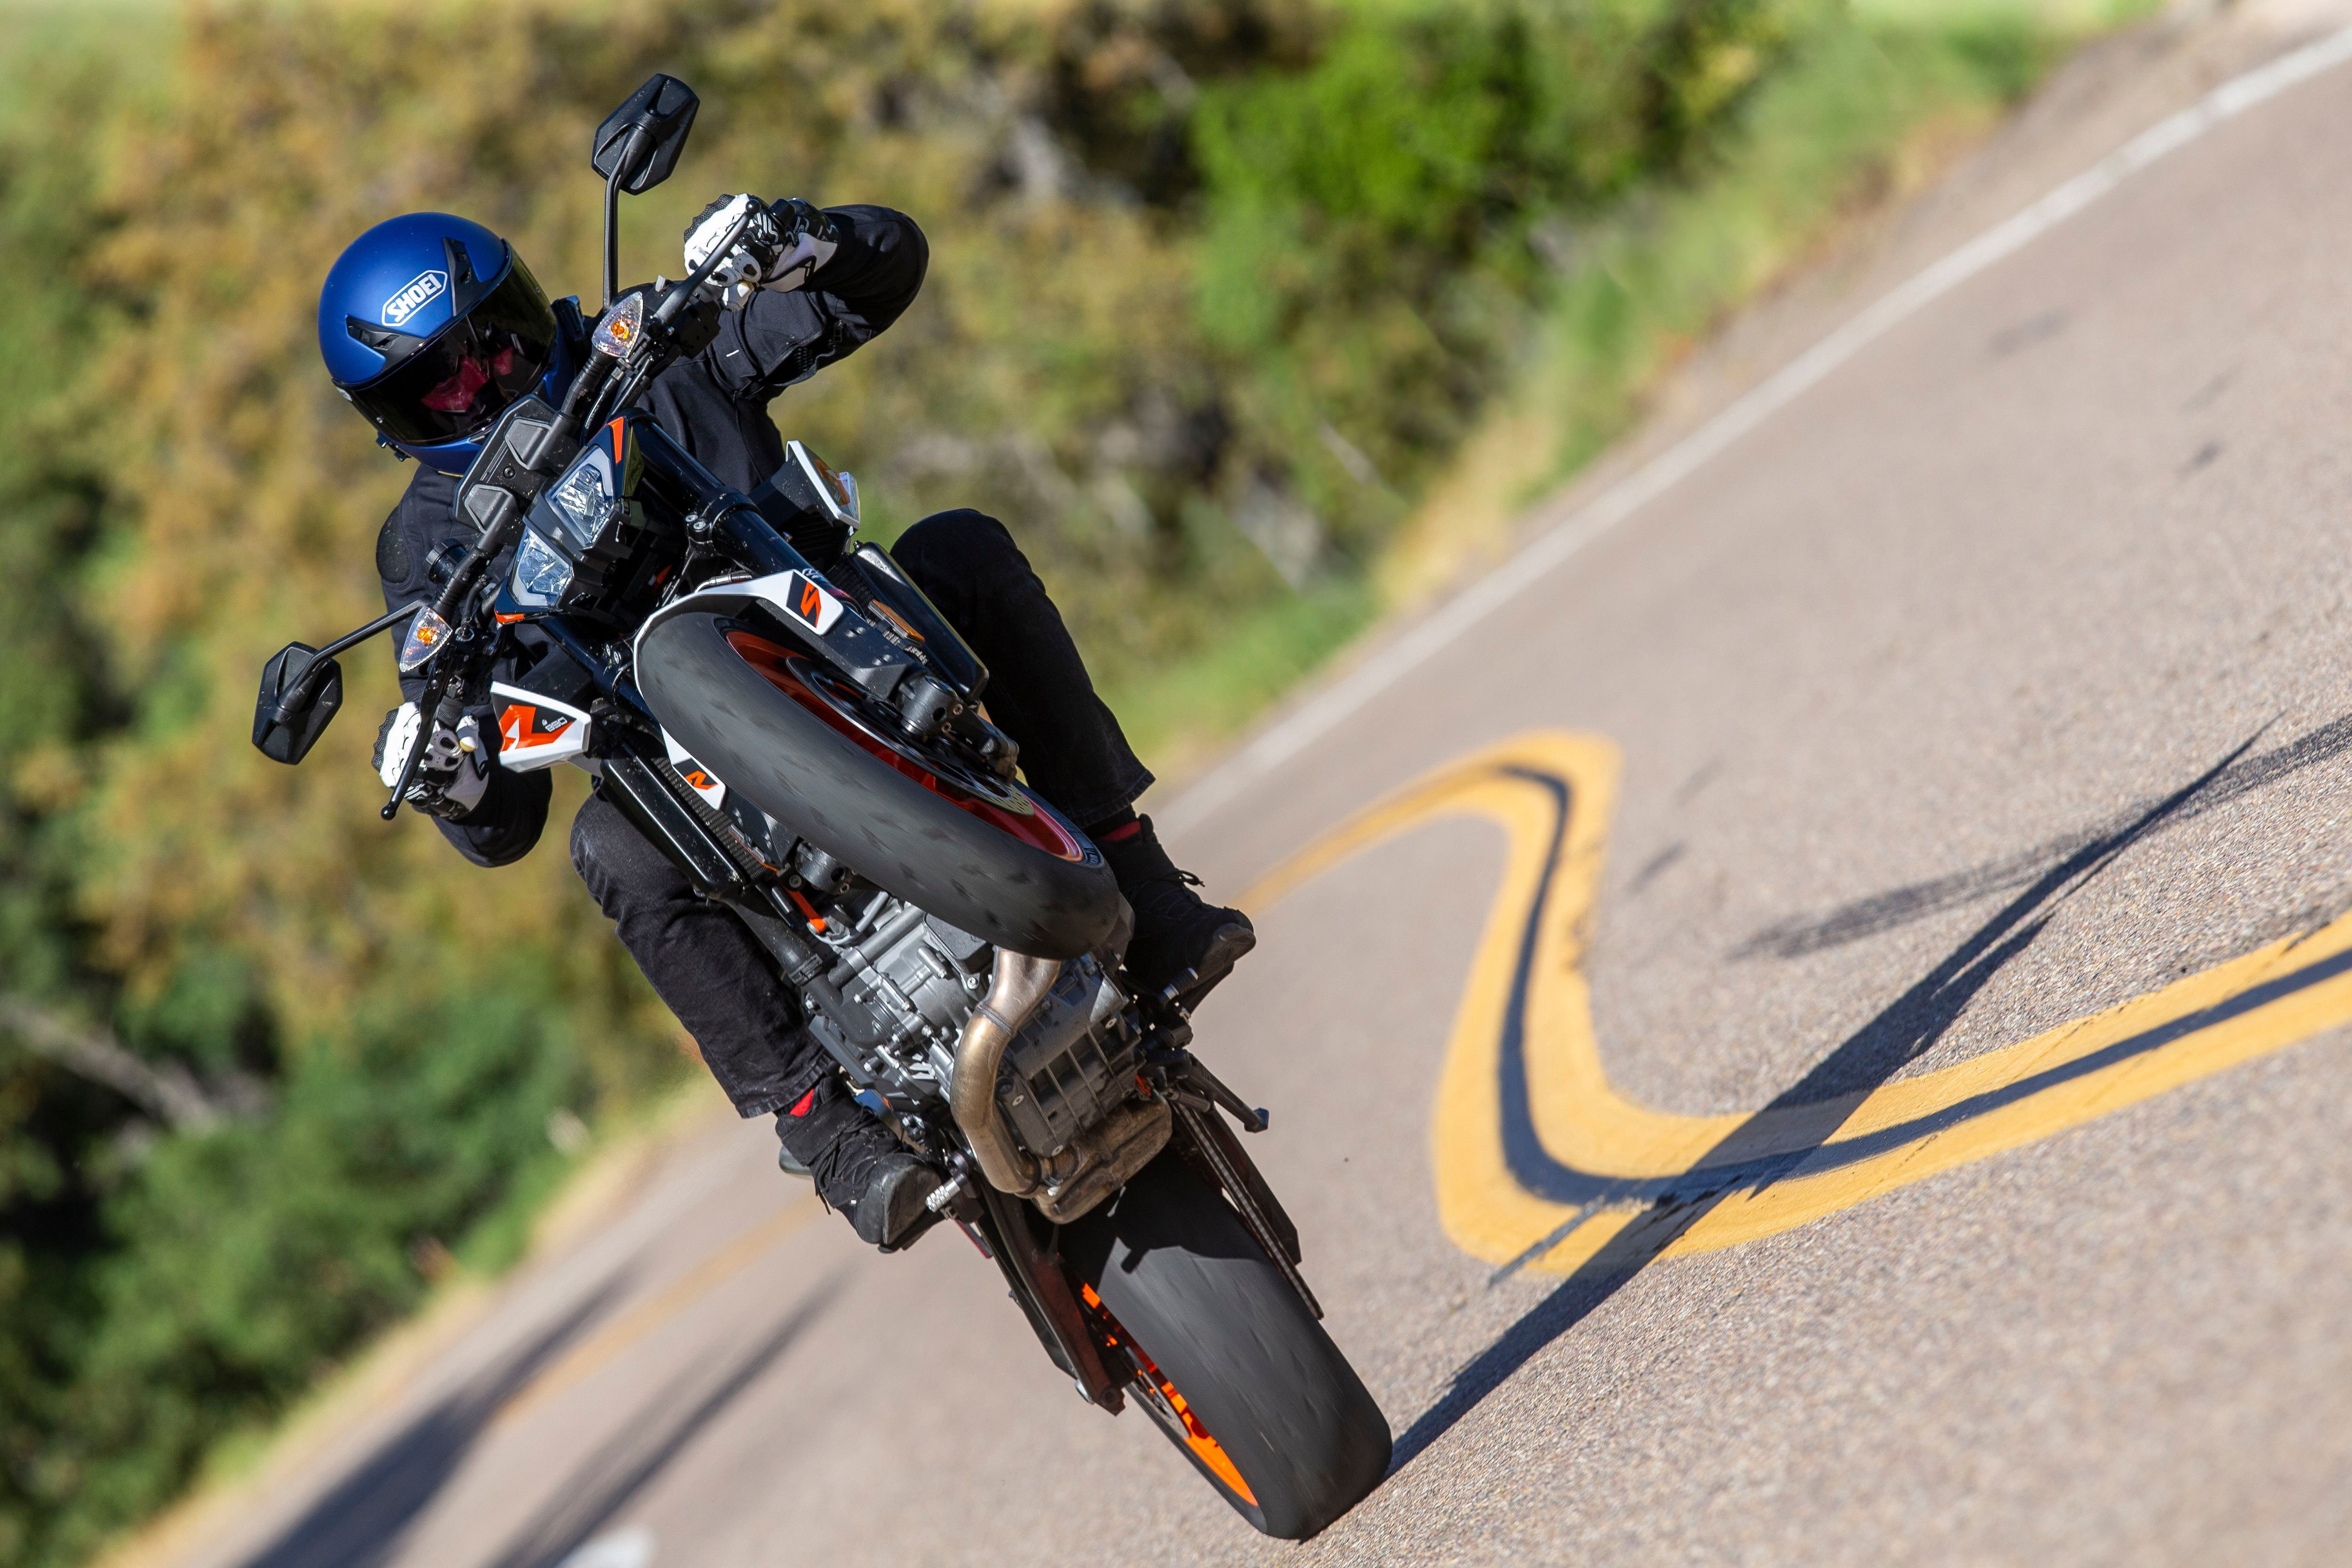 If you're looking for a relatively practical sport naked that rides even better than it looks, you need an 890 Duke R.